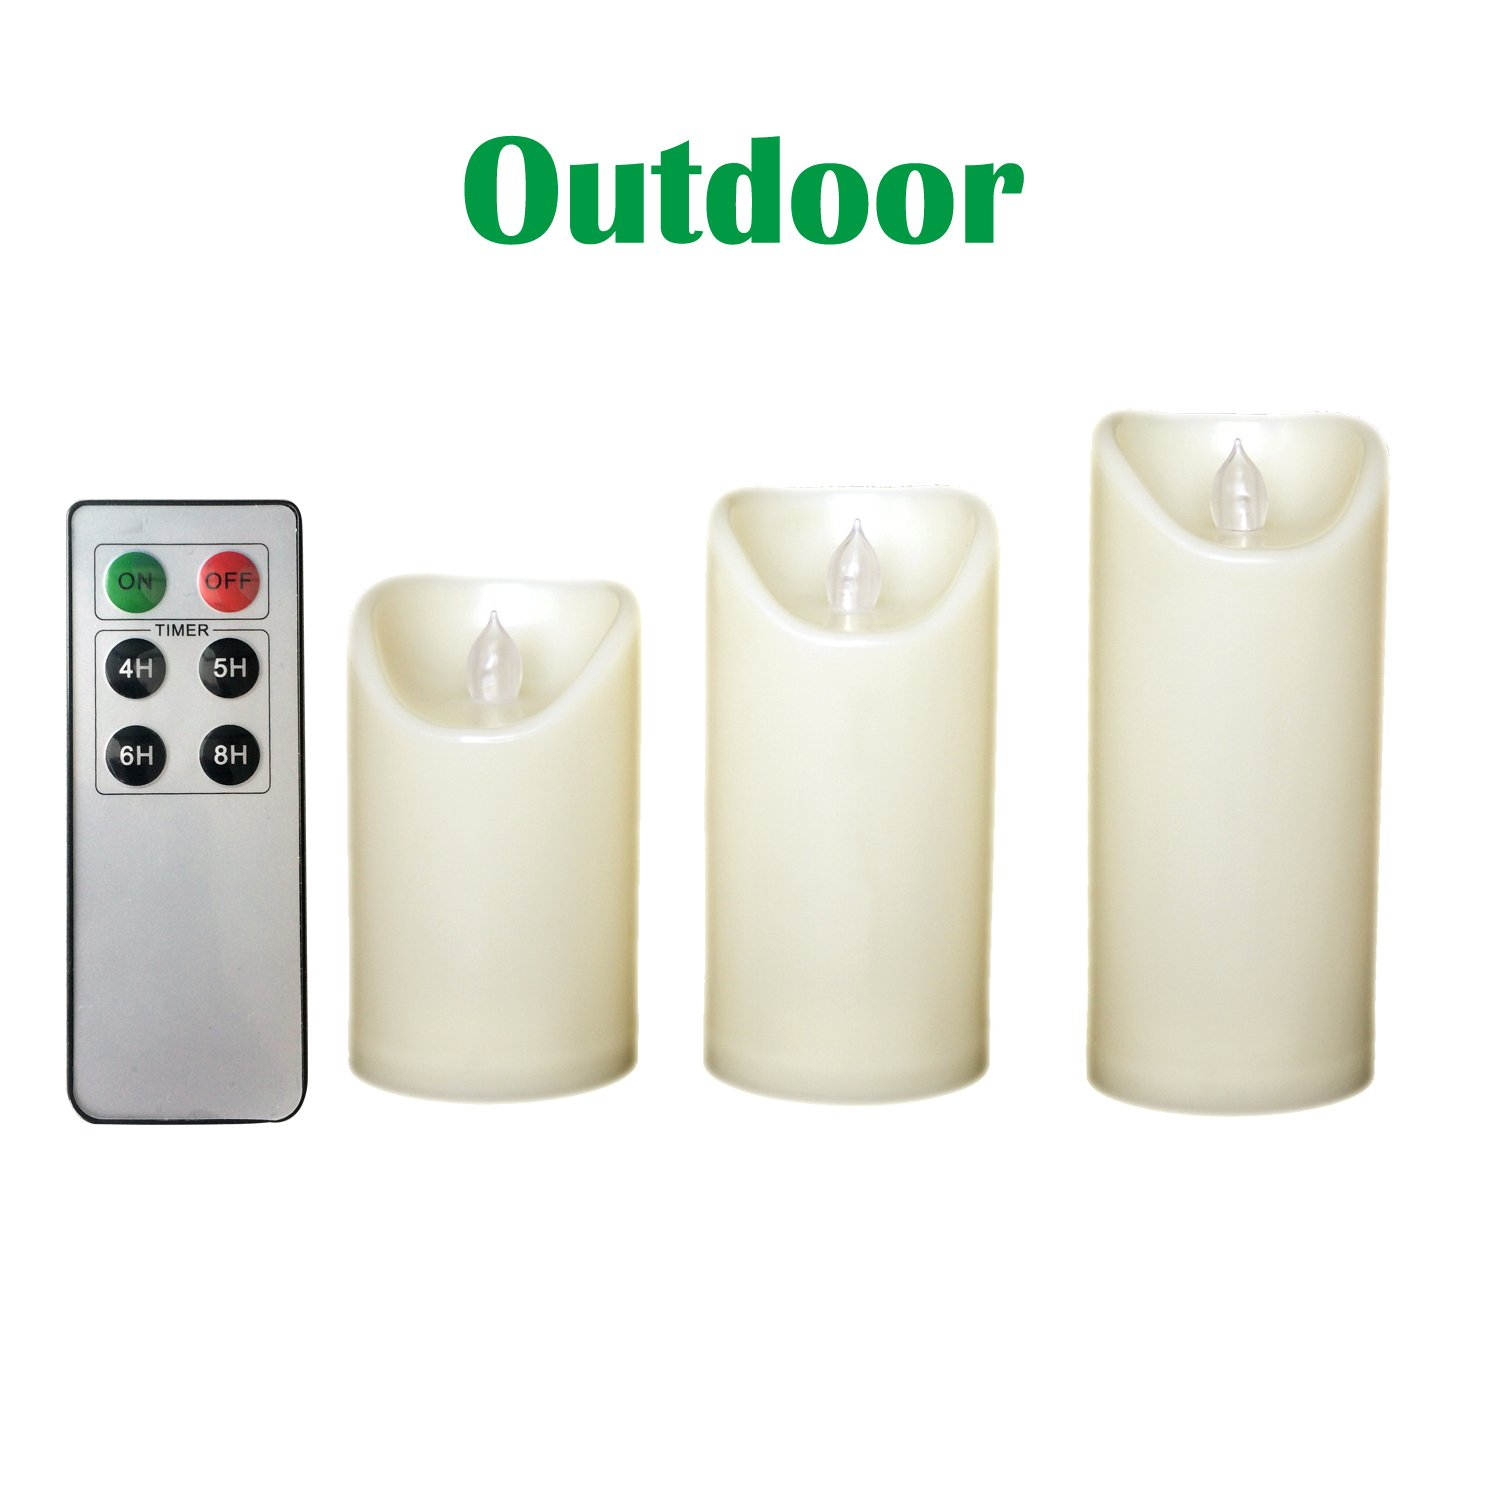 Candle Choice Set of 3 Outdoor Flameless Candles with Remote and Timer, LED Pillar Candles, Weatherproof Battery Operated Candles, Candles, Long Battery Life, Size 3''x5'', 6'', and 7'' by CANDLE CHOICE